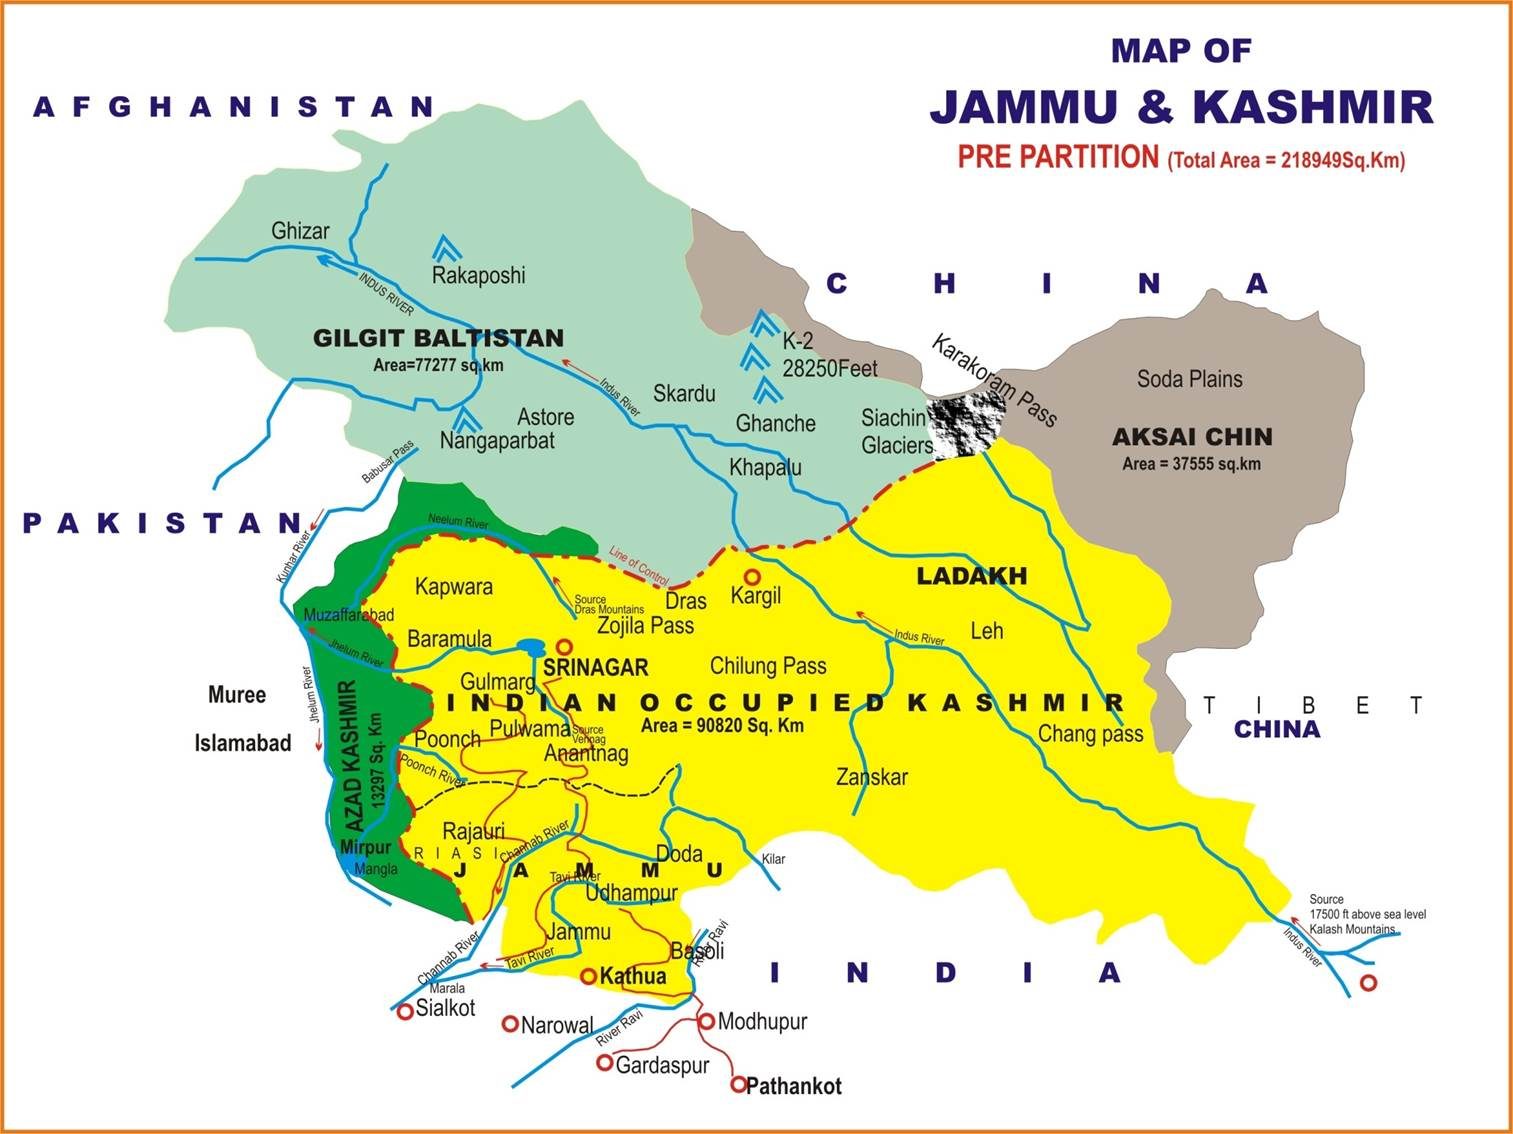 https://pndajk.gov.pk/uploadfiles/downloads/J&K%20Map%20complete.jpg